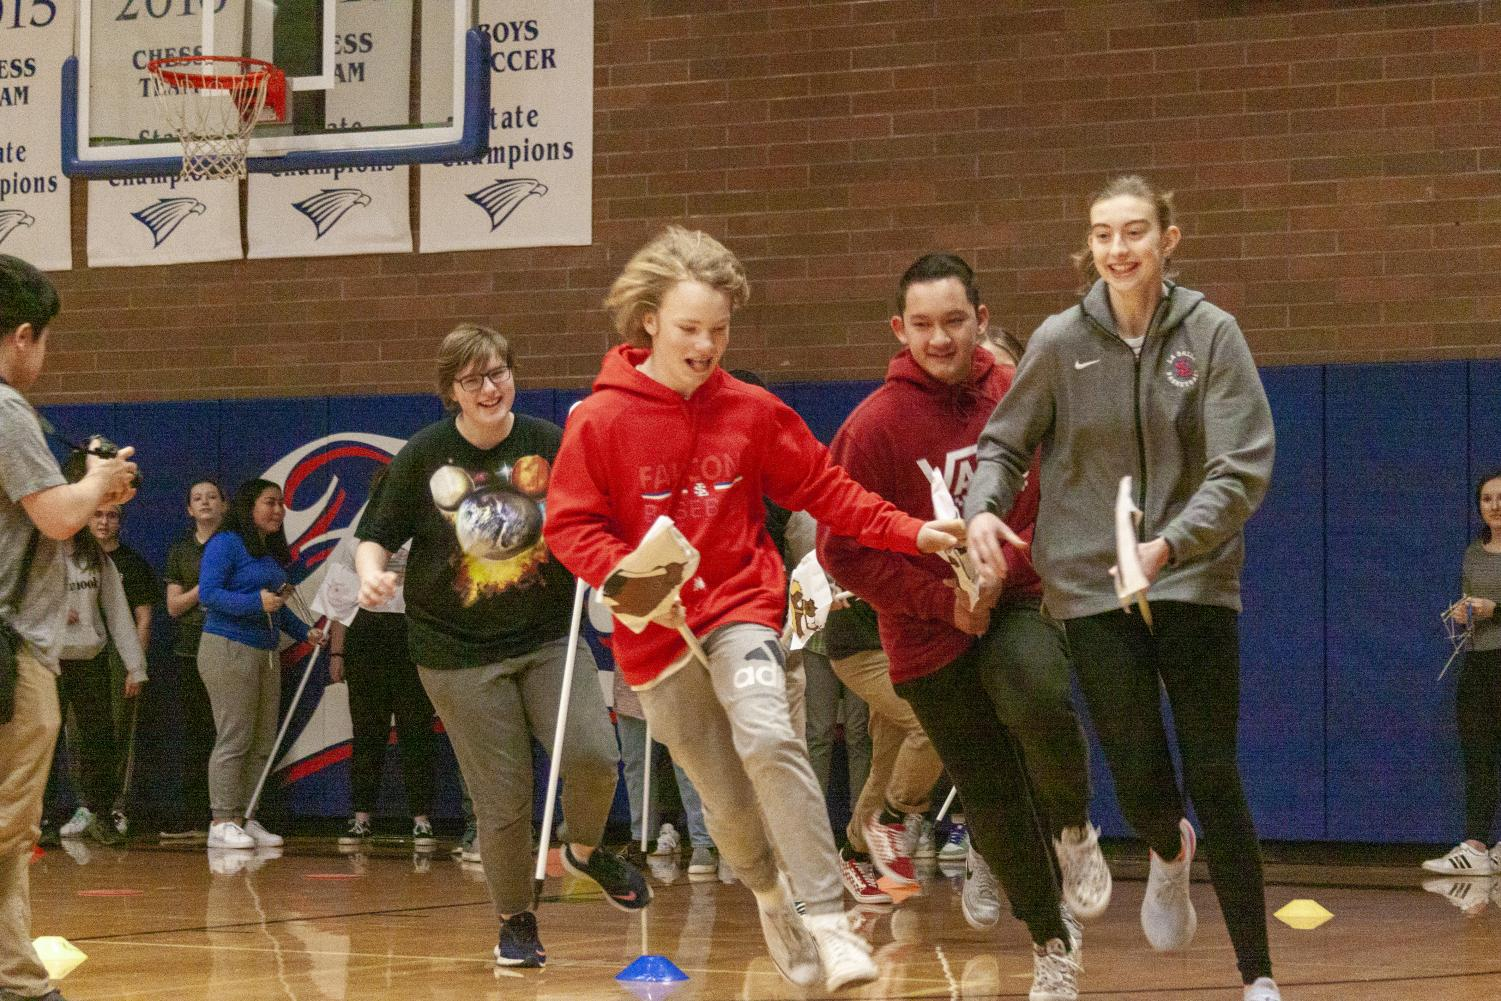 Students+participated+in+events+such+as%3A+arm+wrestling%2C+a+three-legged+race%2C+a+balloon+race%2C+horse+relay+race%2C+and+musical+chairs.+